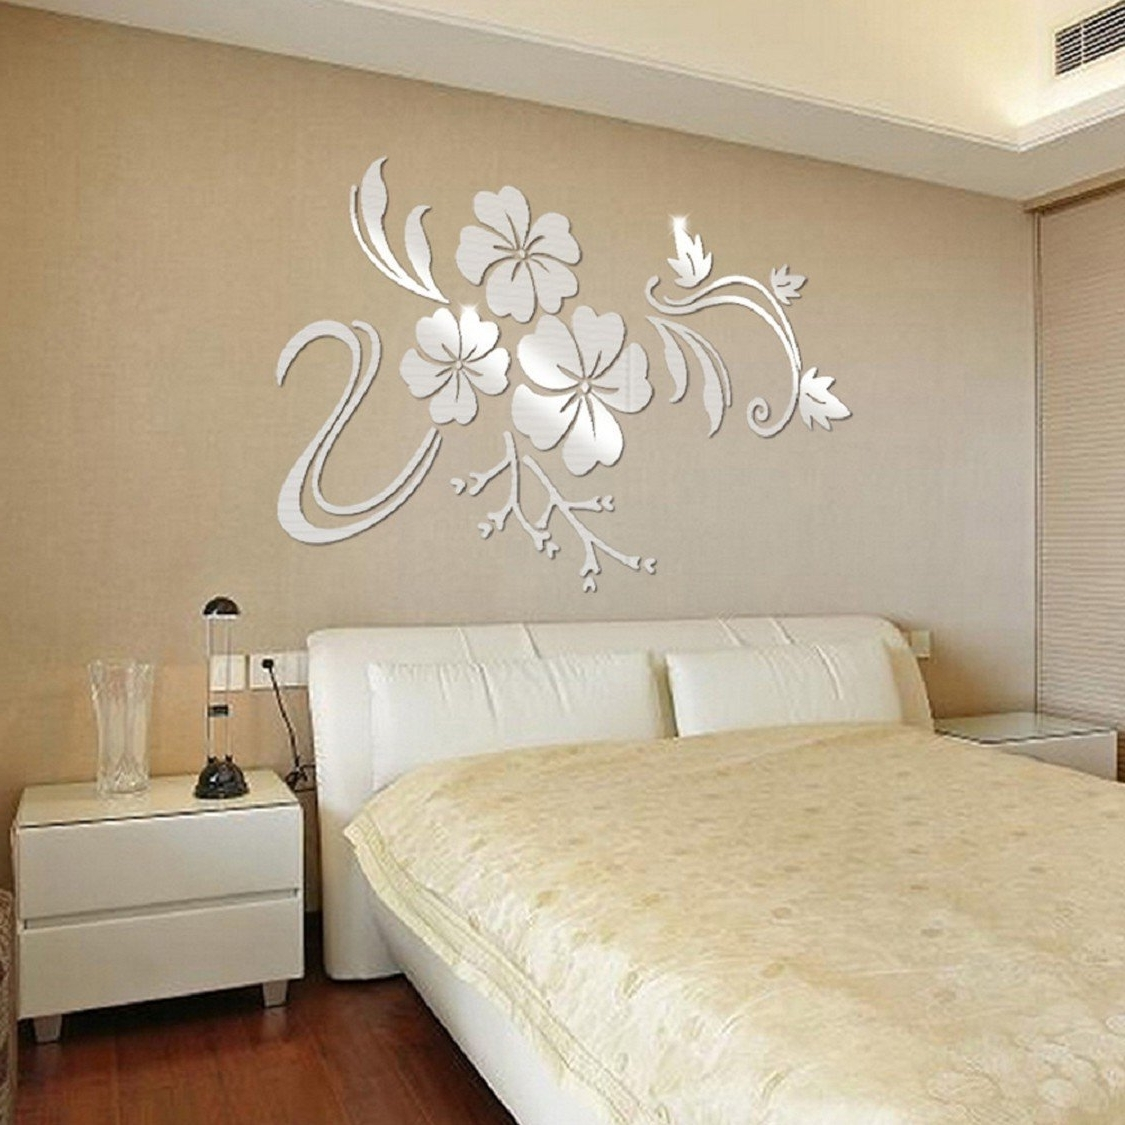 Newest Ikevan 1set Acrylic Art 3d Mirror Flower Wall Stickers Diy Home In 3d Removable Butterfly Wall Art Stickers (View 10 of 15)